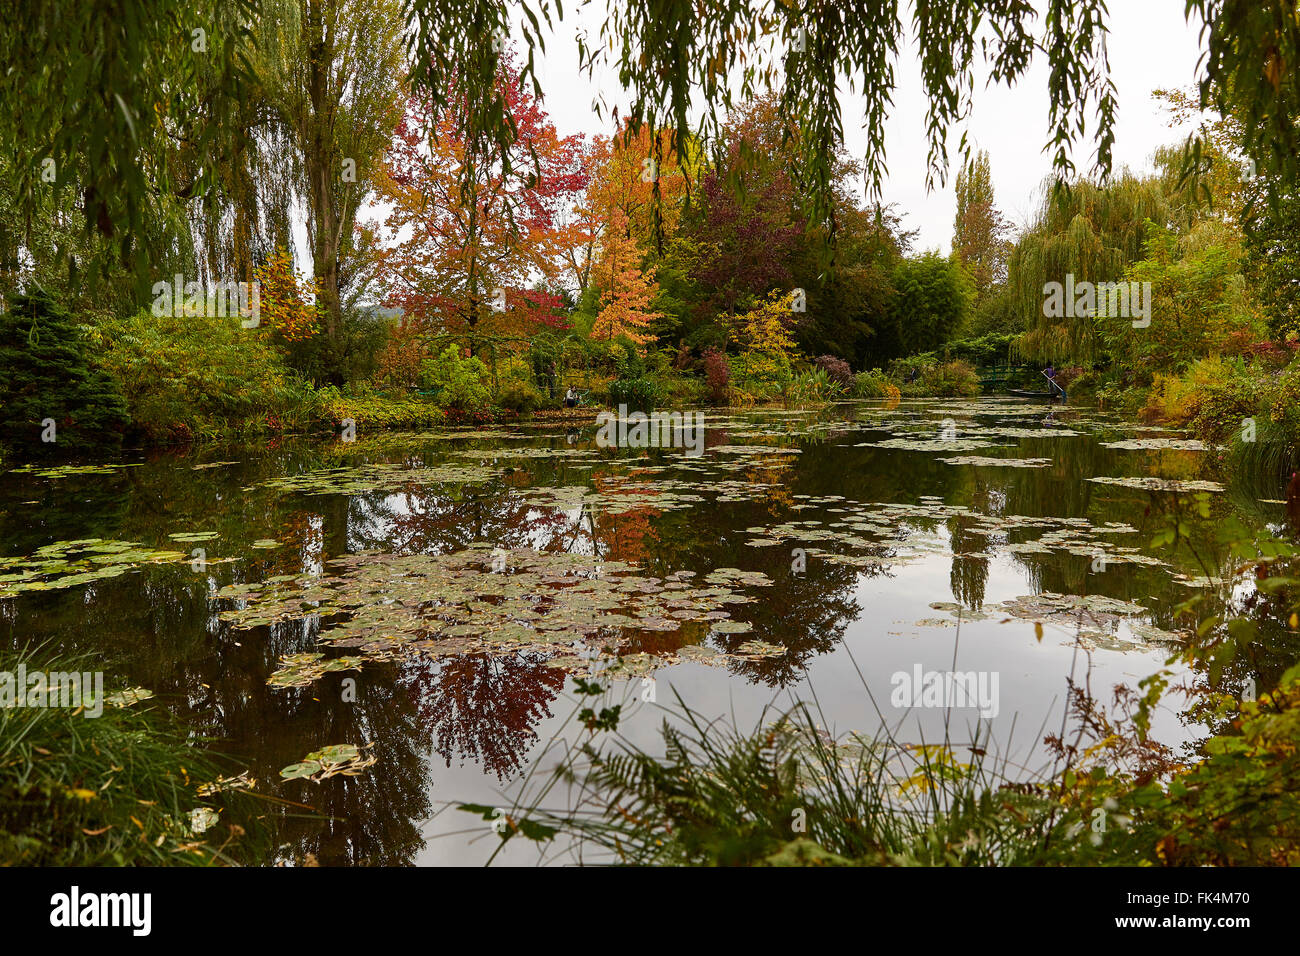 GIVERNY FRANCE MONET HOUSE GARDEN Stock Photo: 97833988 - Alamy